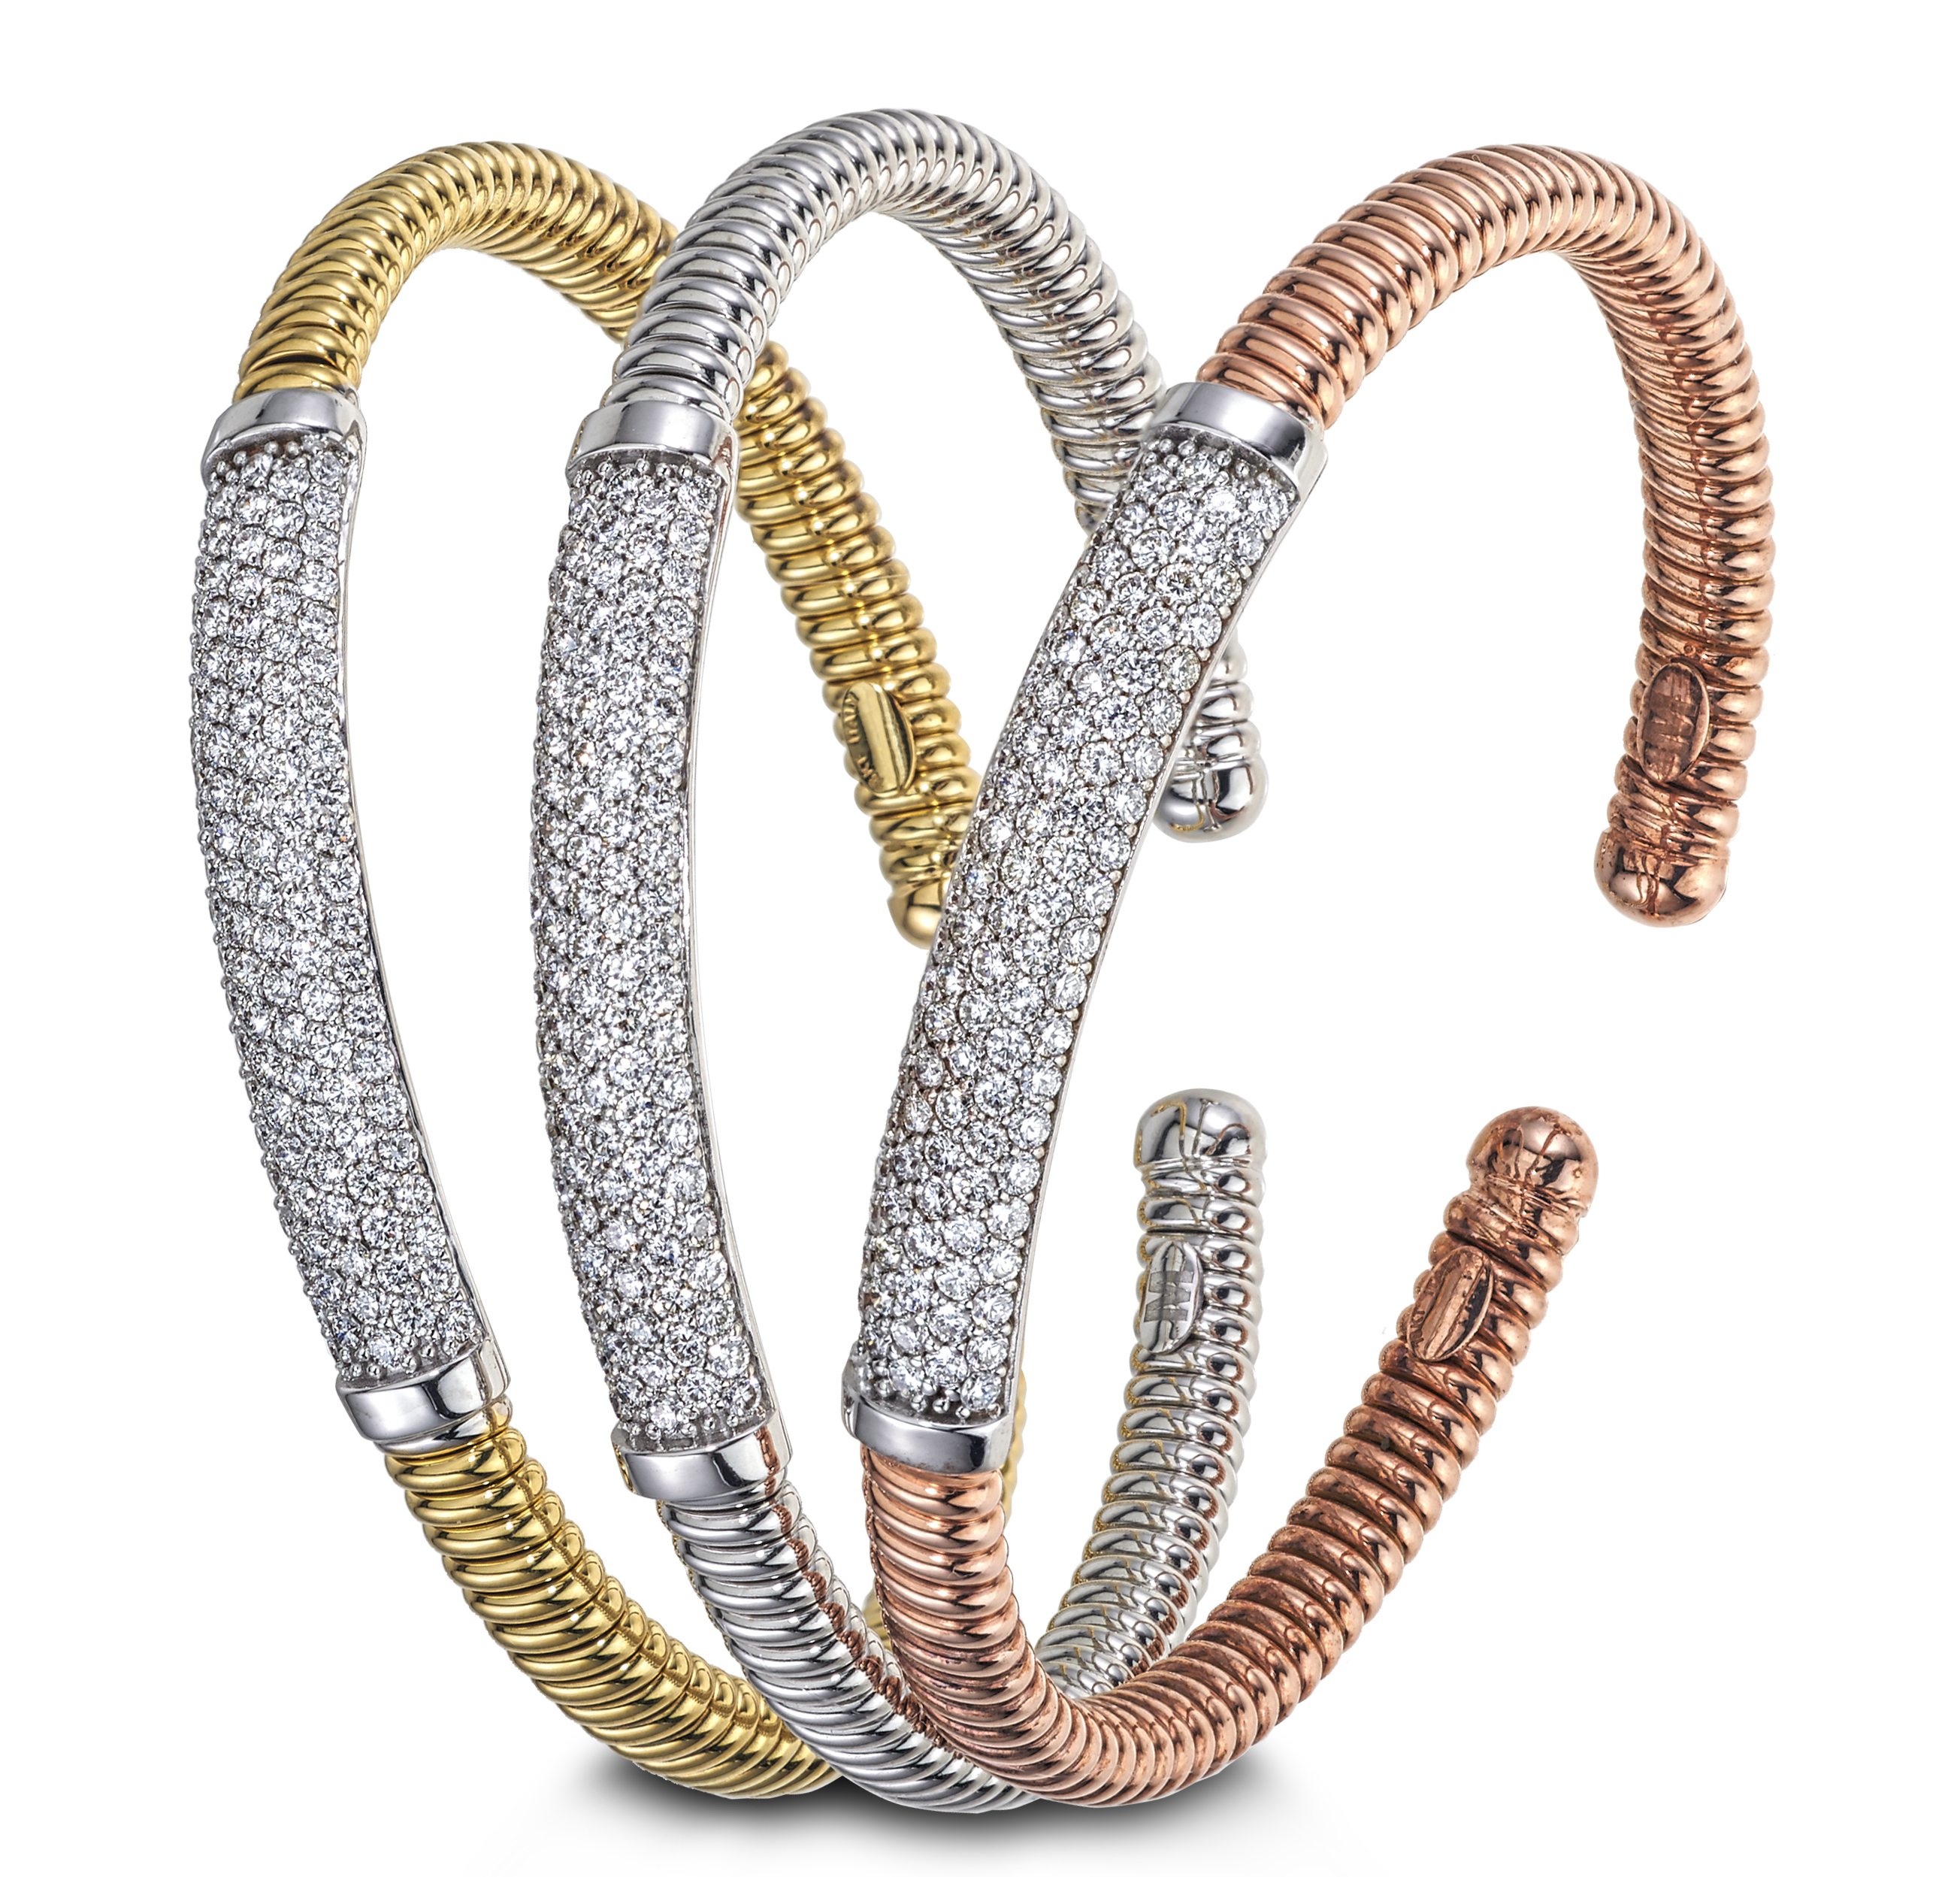 BM Designs cuff bangles | JCK On Your Market